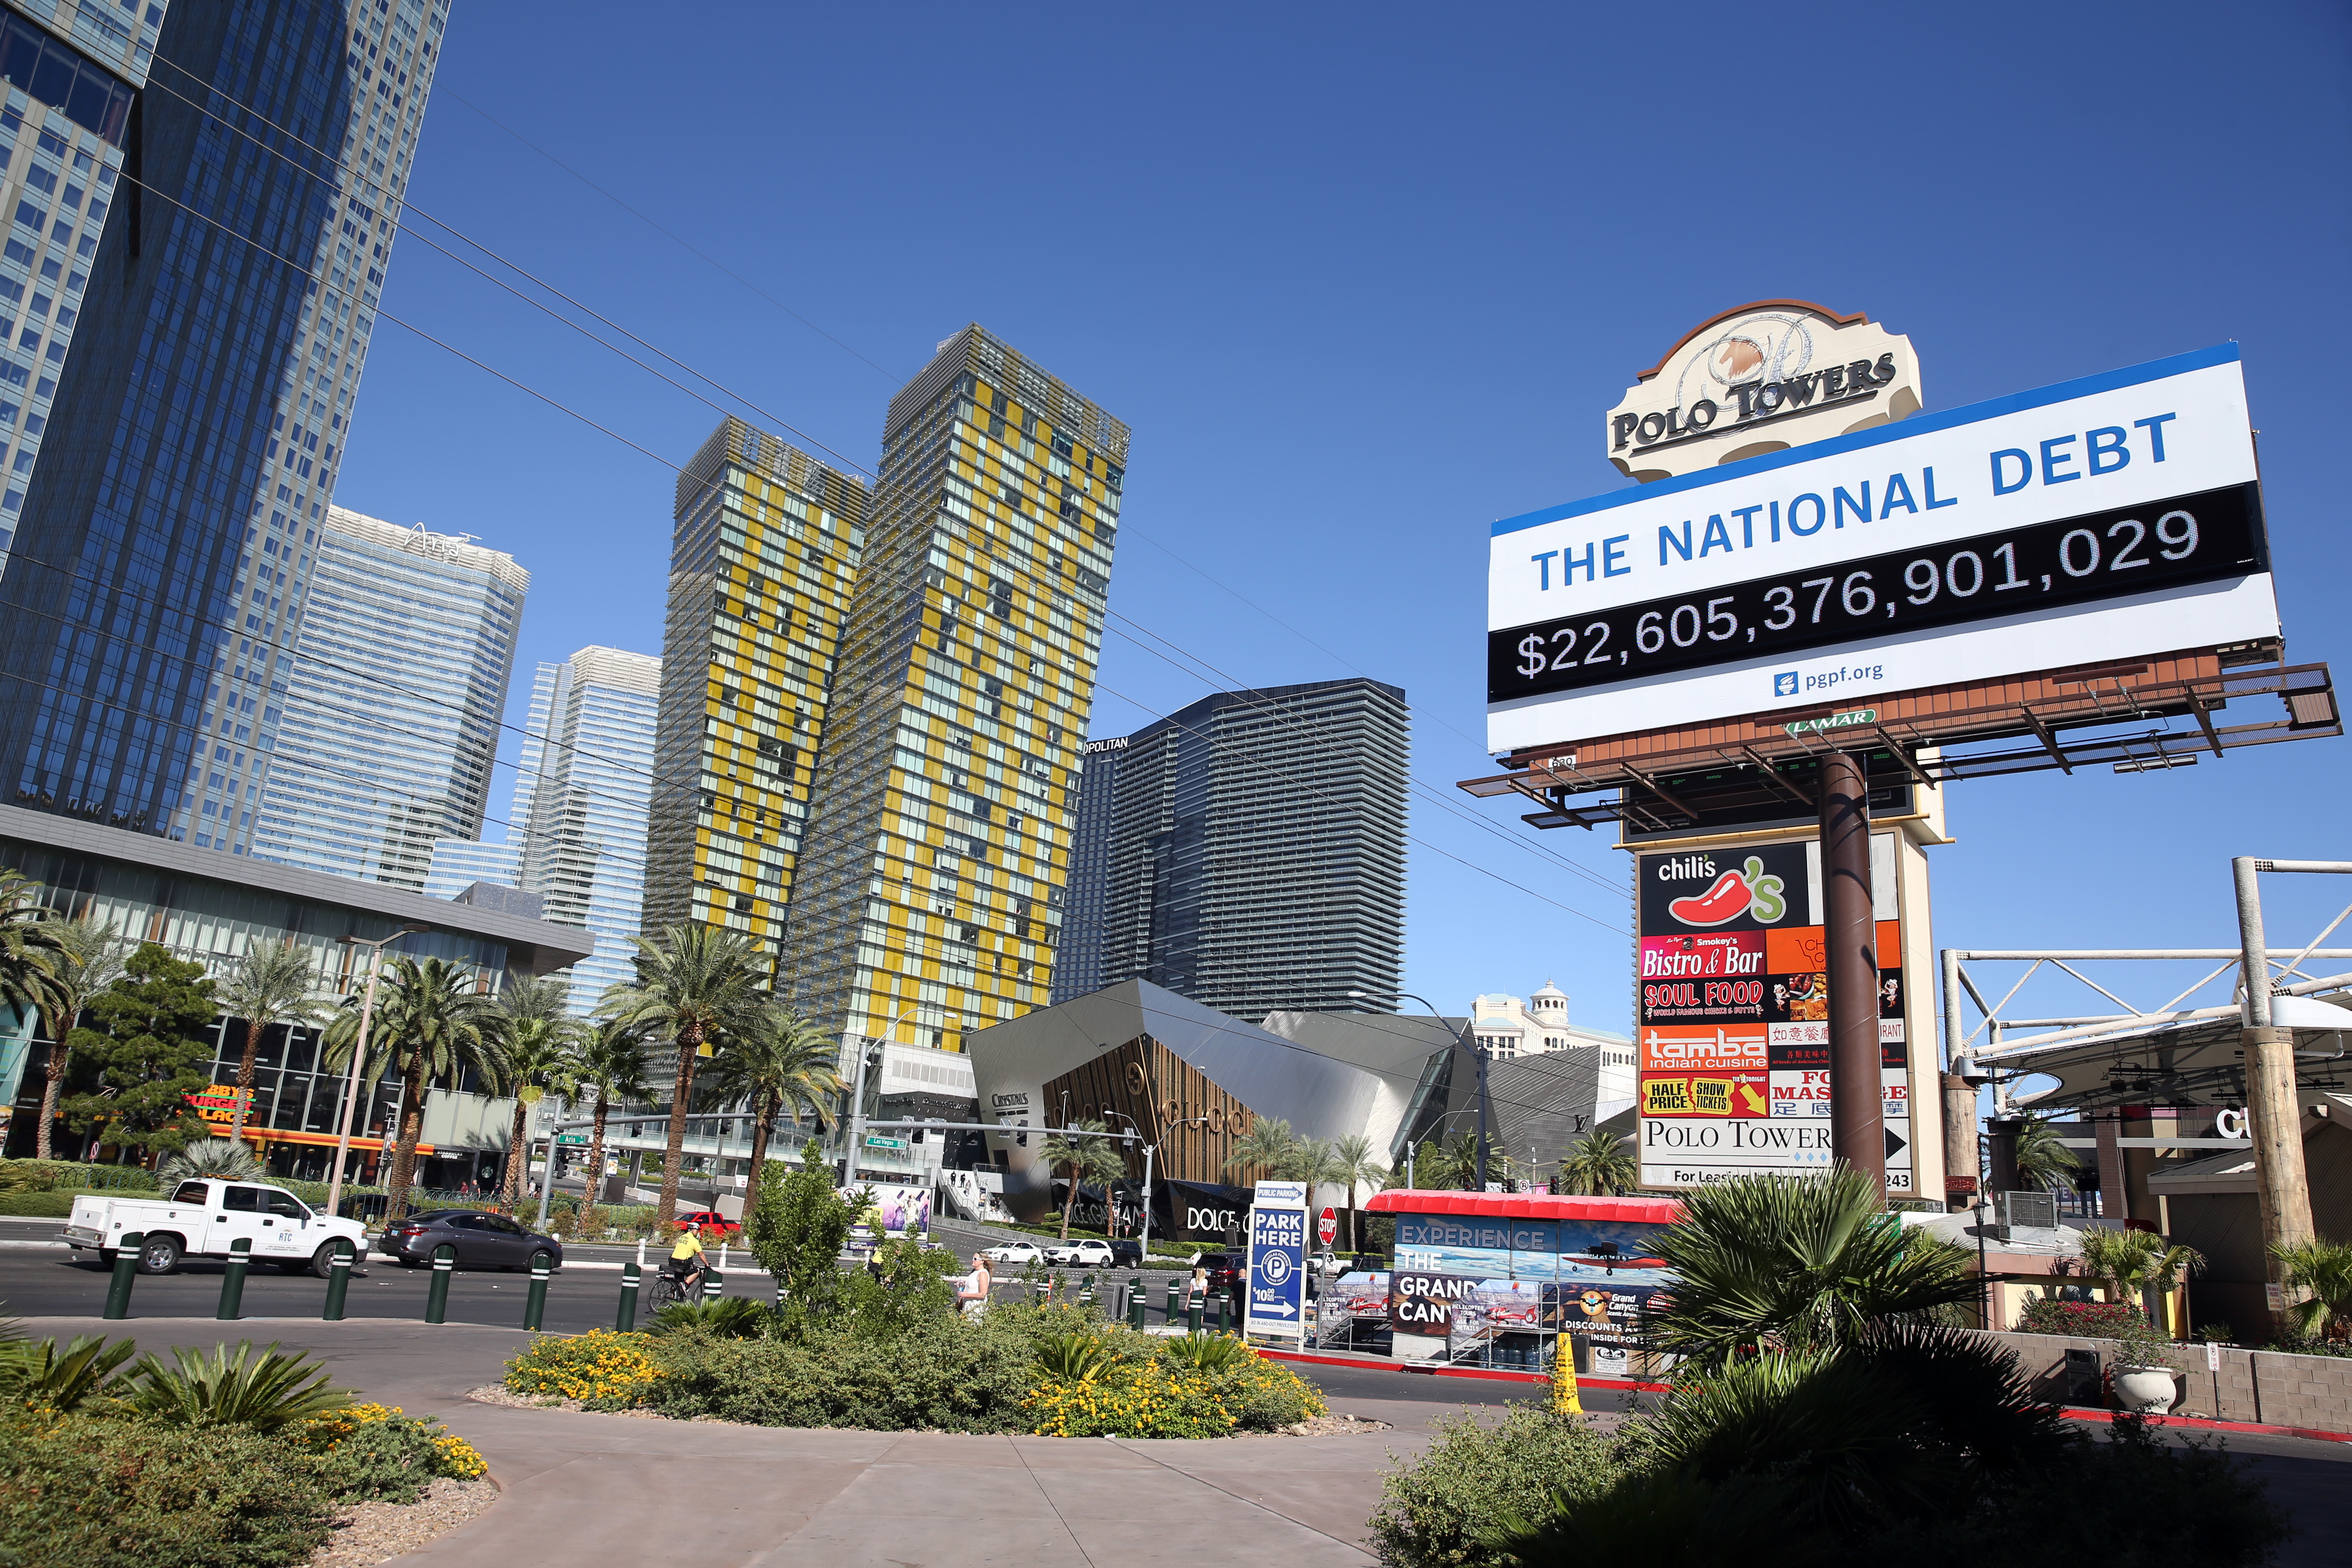 LAS VEGAS, NEVADA - SEPTEMBER 19: Billboard showing the national debt and each Americans share is displayed on September 19, 2019 in downtown Las Vegas, Nevada. (Photo by Isaac Brecken/Getty Images for PGPF)